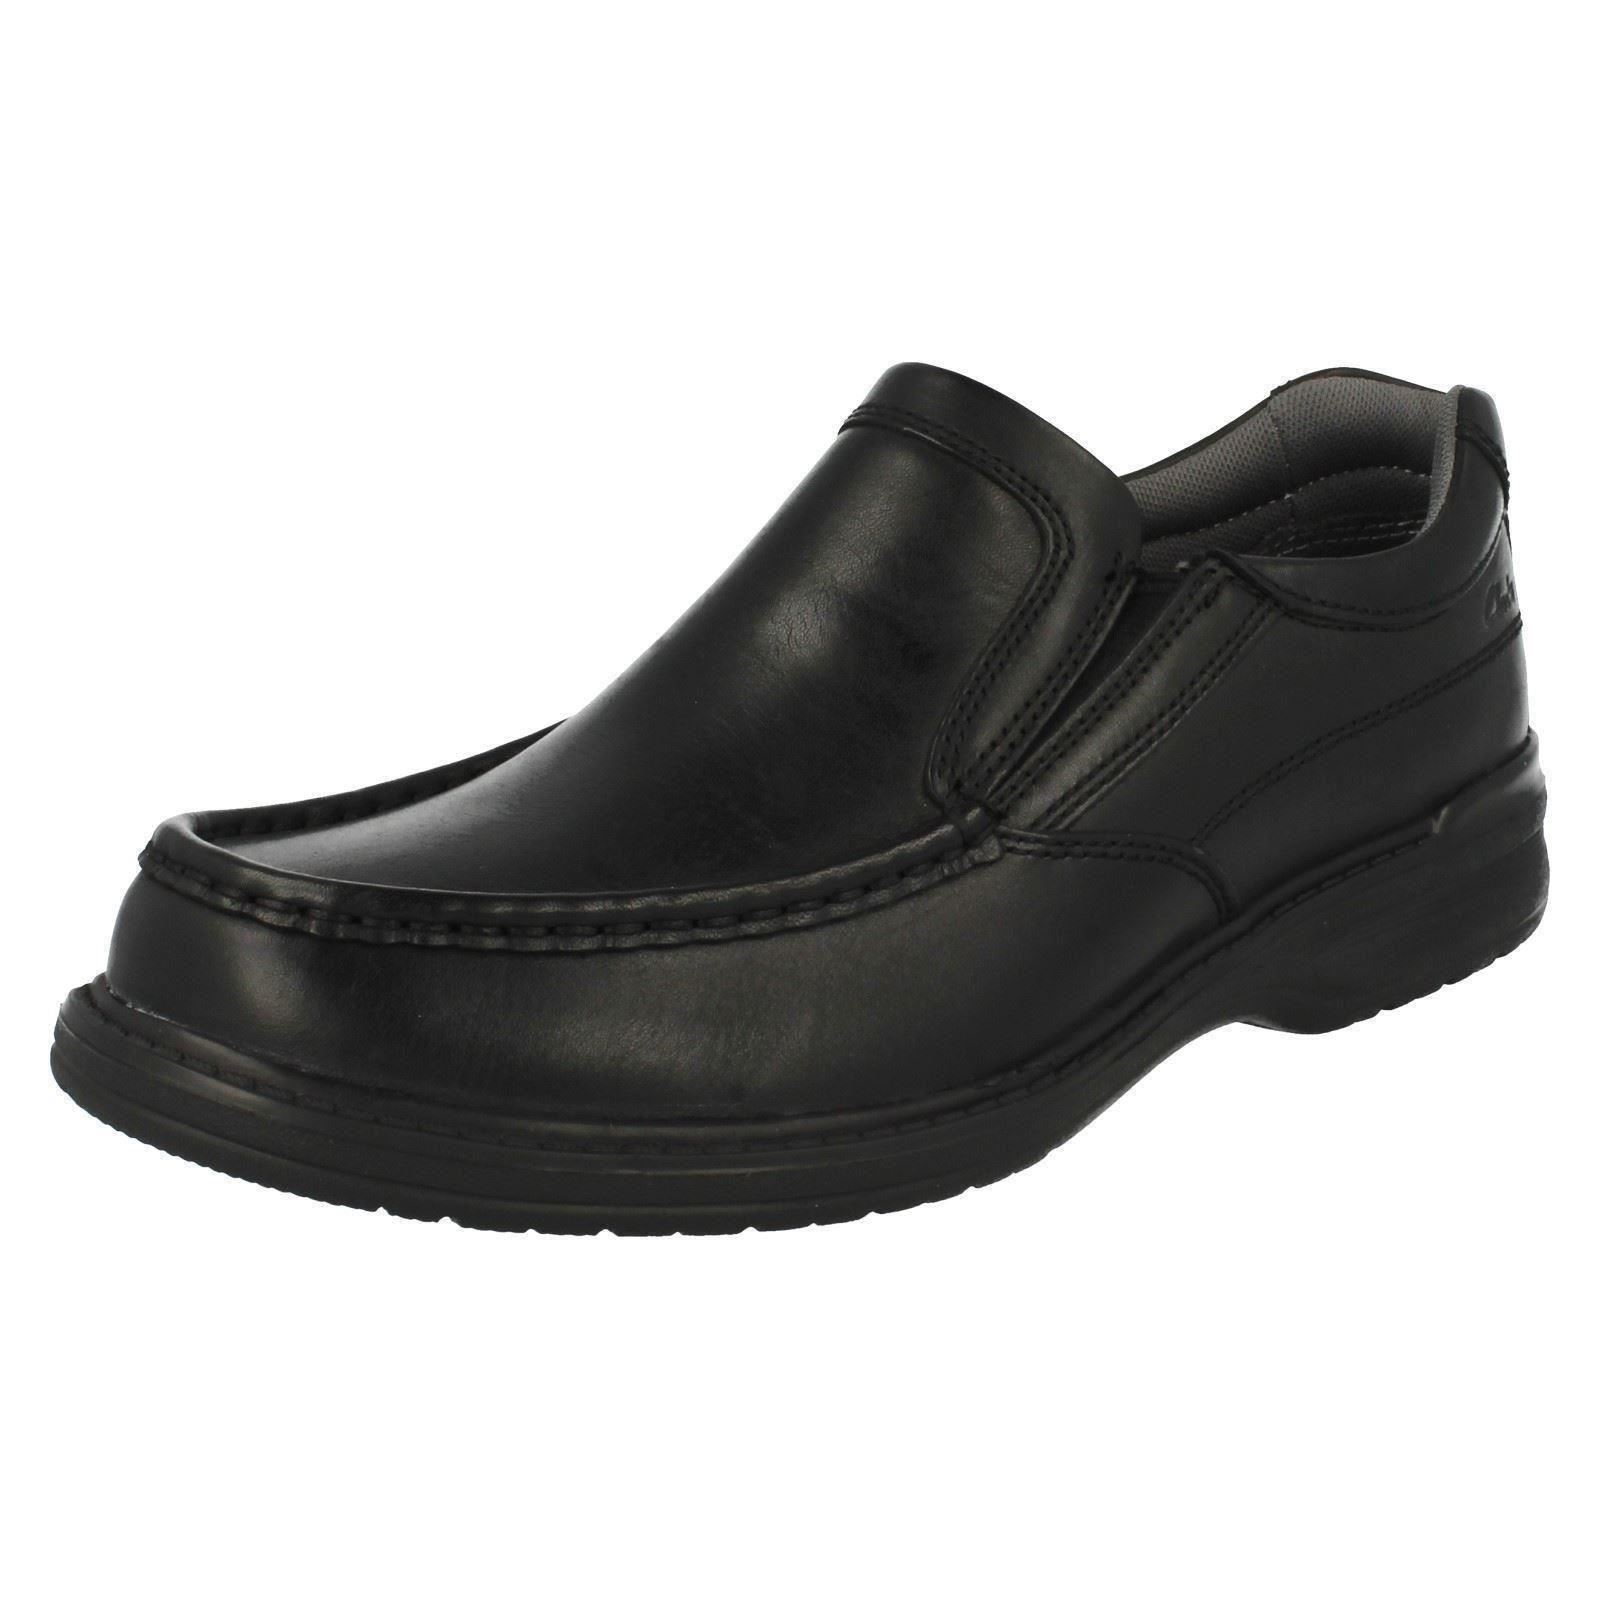 'Mens Clarks' Slip On Keeler Shoes - Keeler On Step fc5dd7